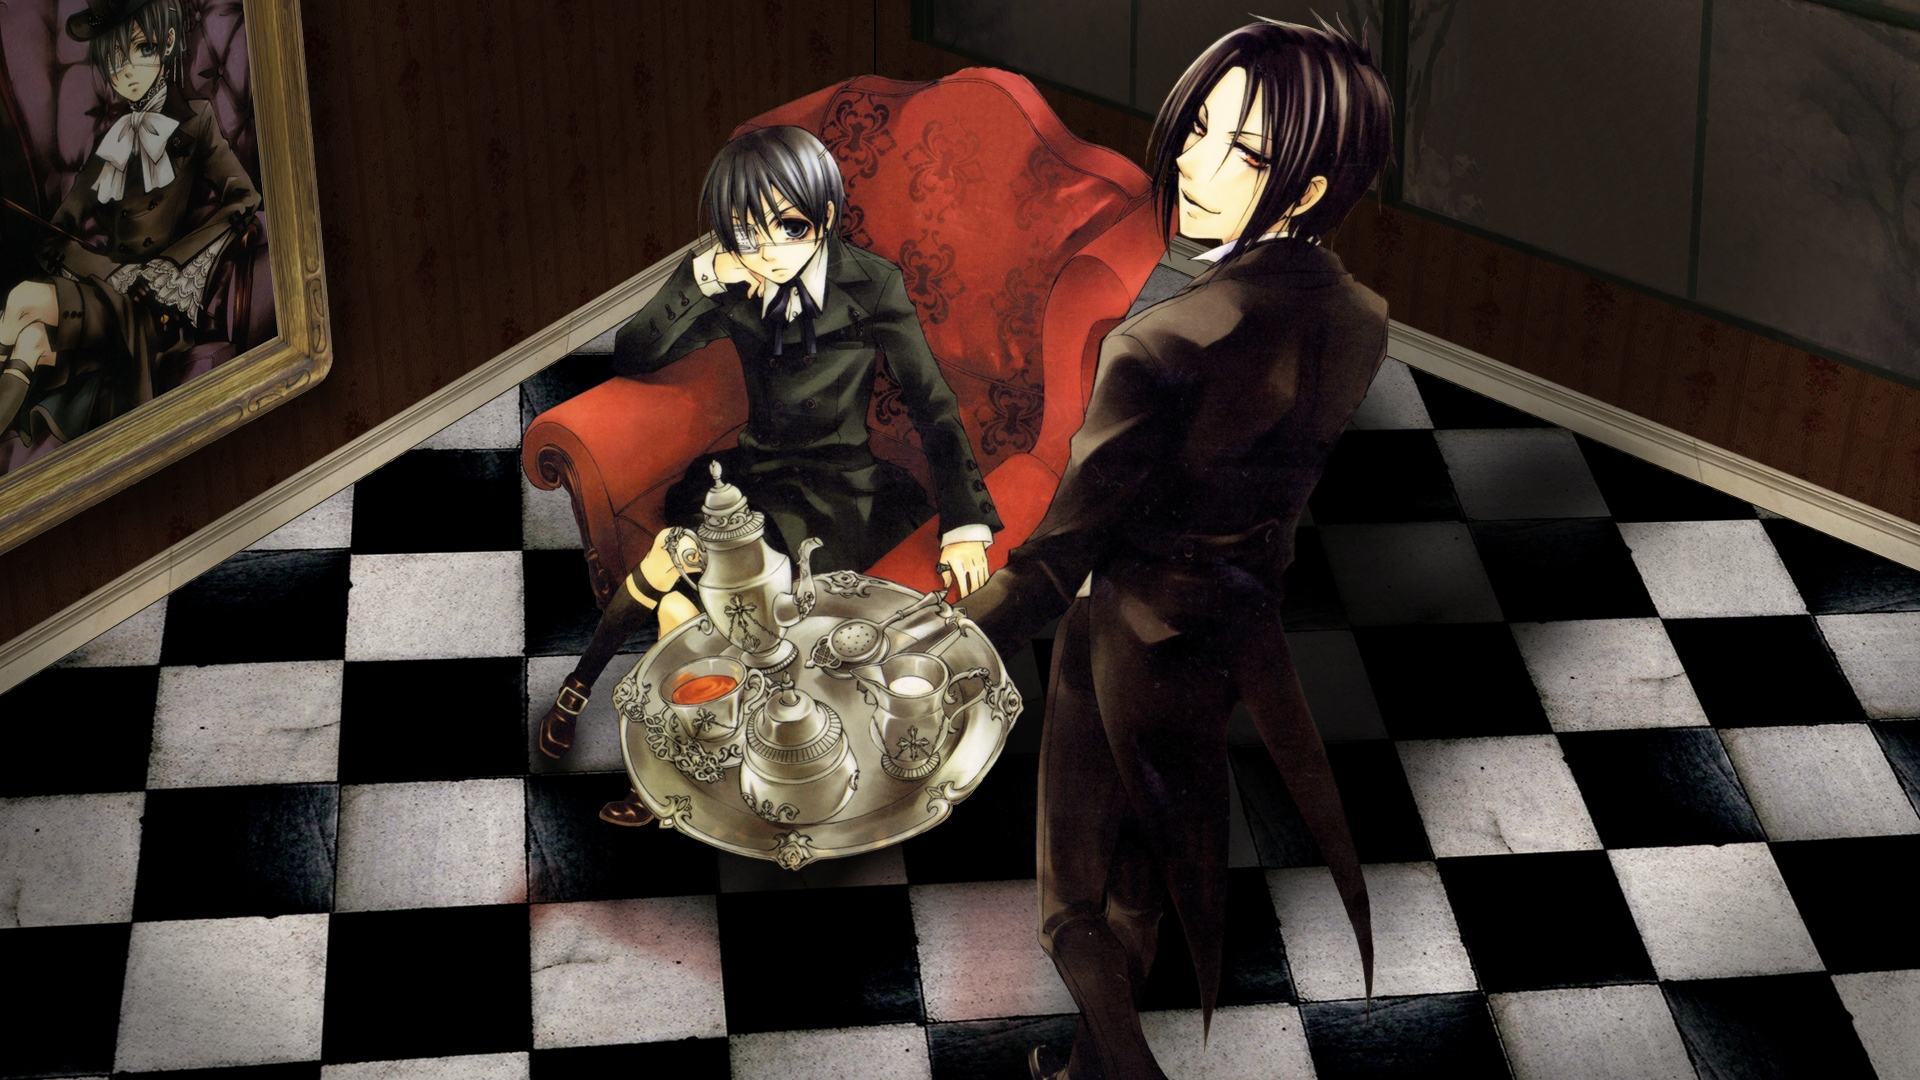 Download Wallpaper 1920x1080 Anime Couple Chair Table Tableware Gothic Flooring Painting Full Hd 1080p Hd Background